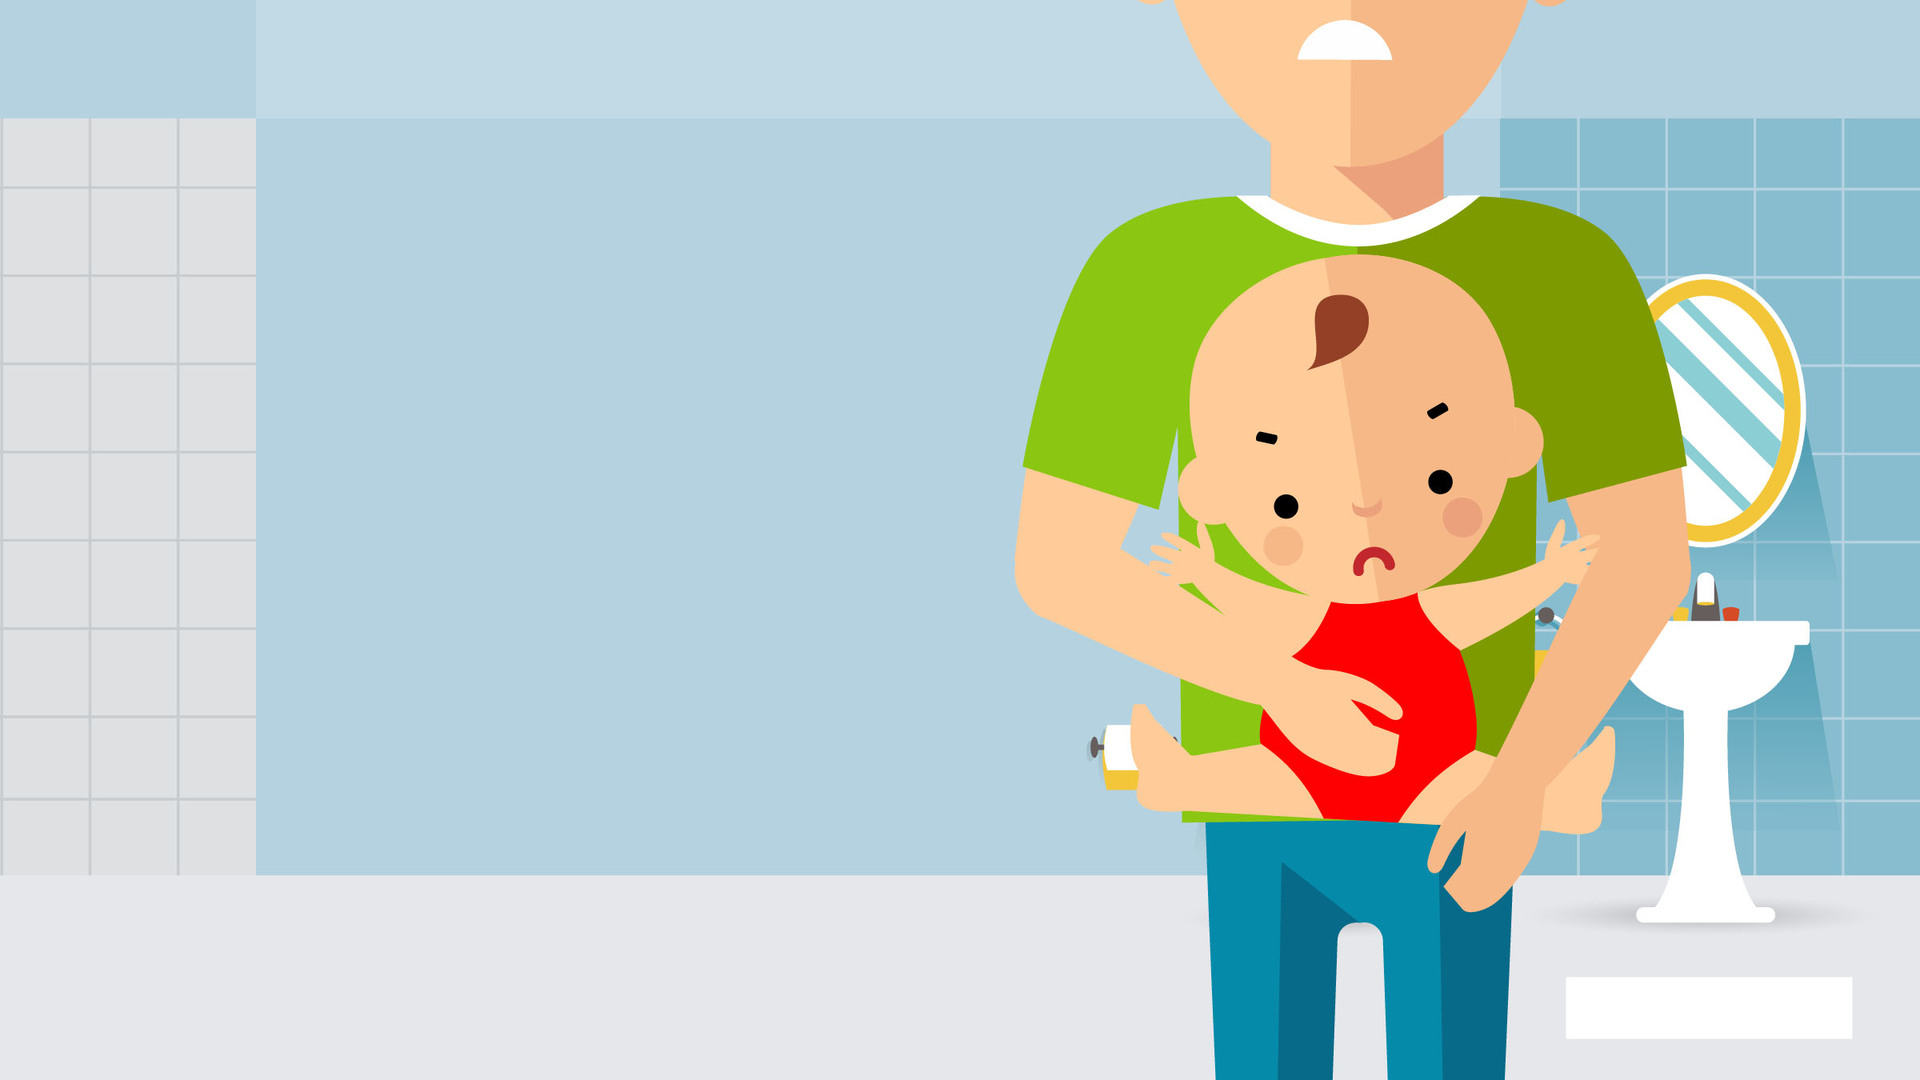 Childcare manual handling training course for créches and preschools.